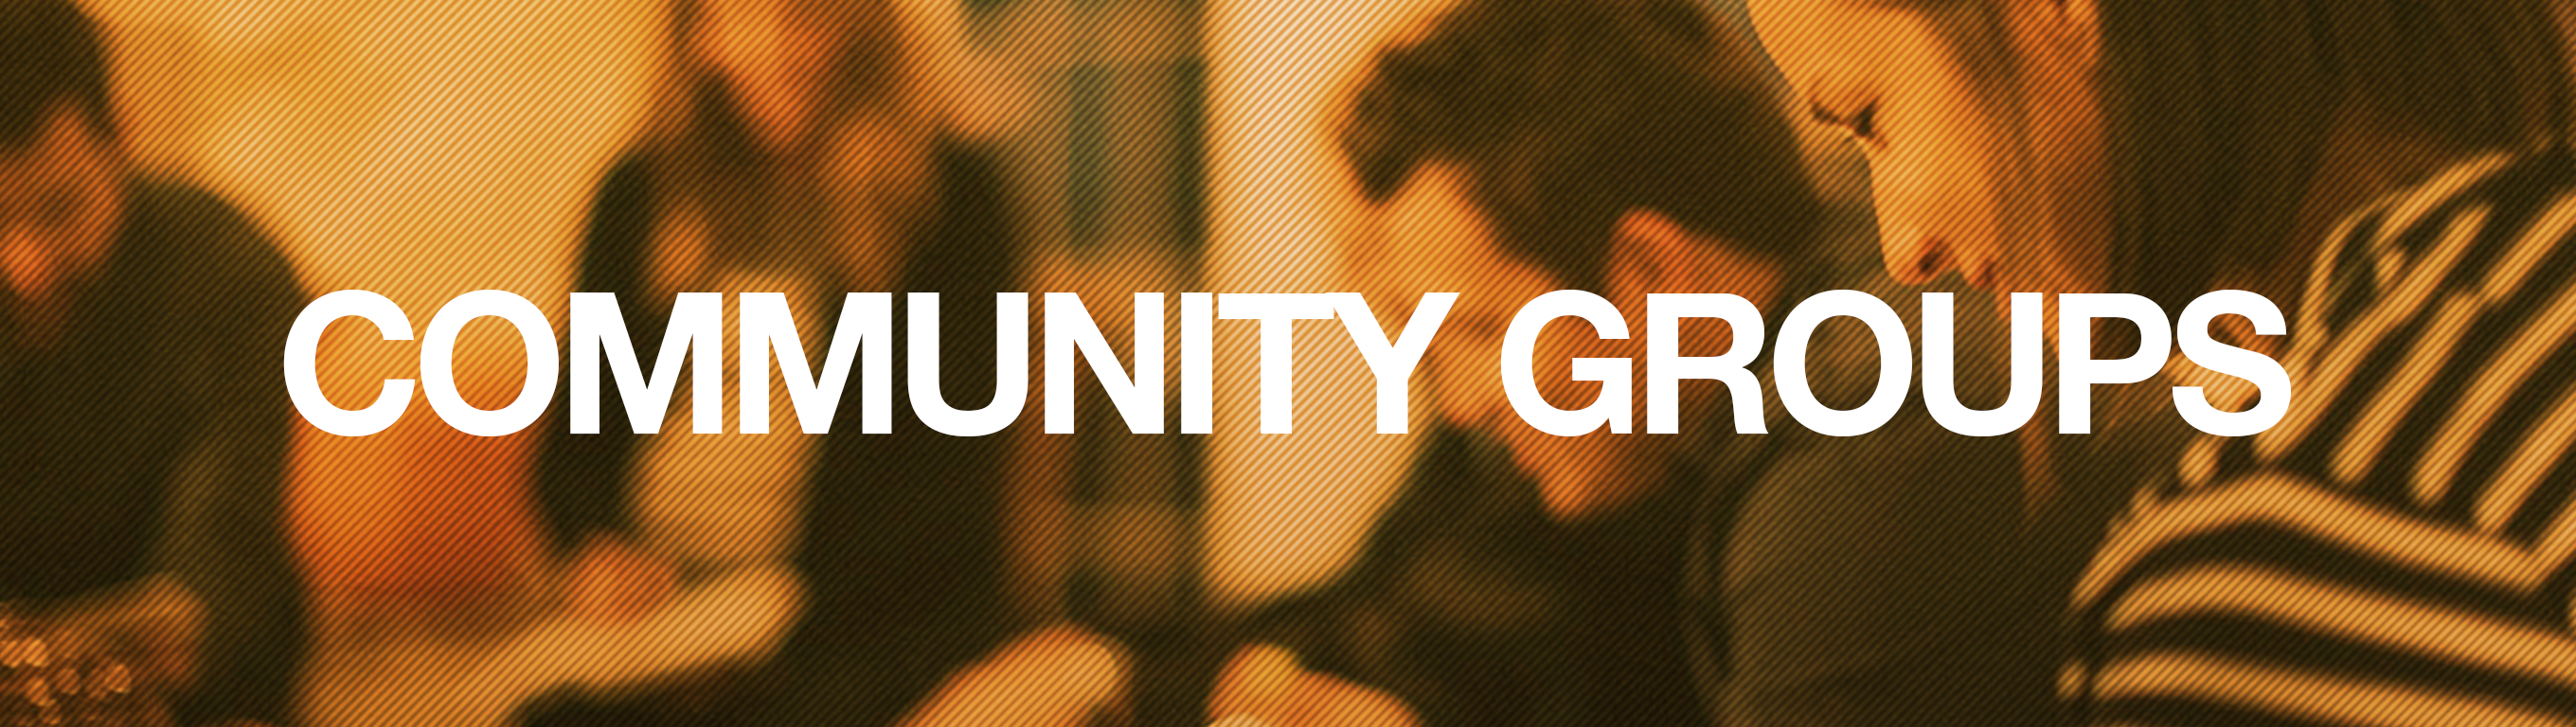 community groups banner_text